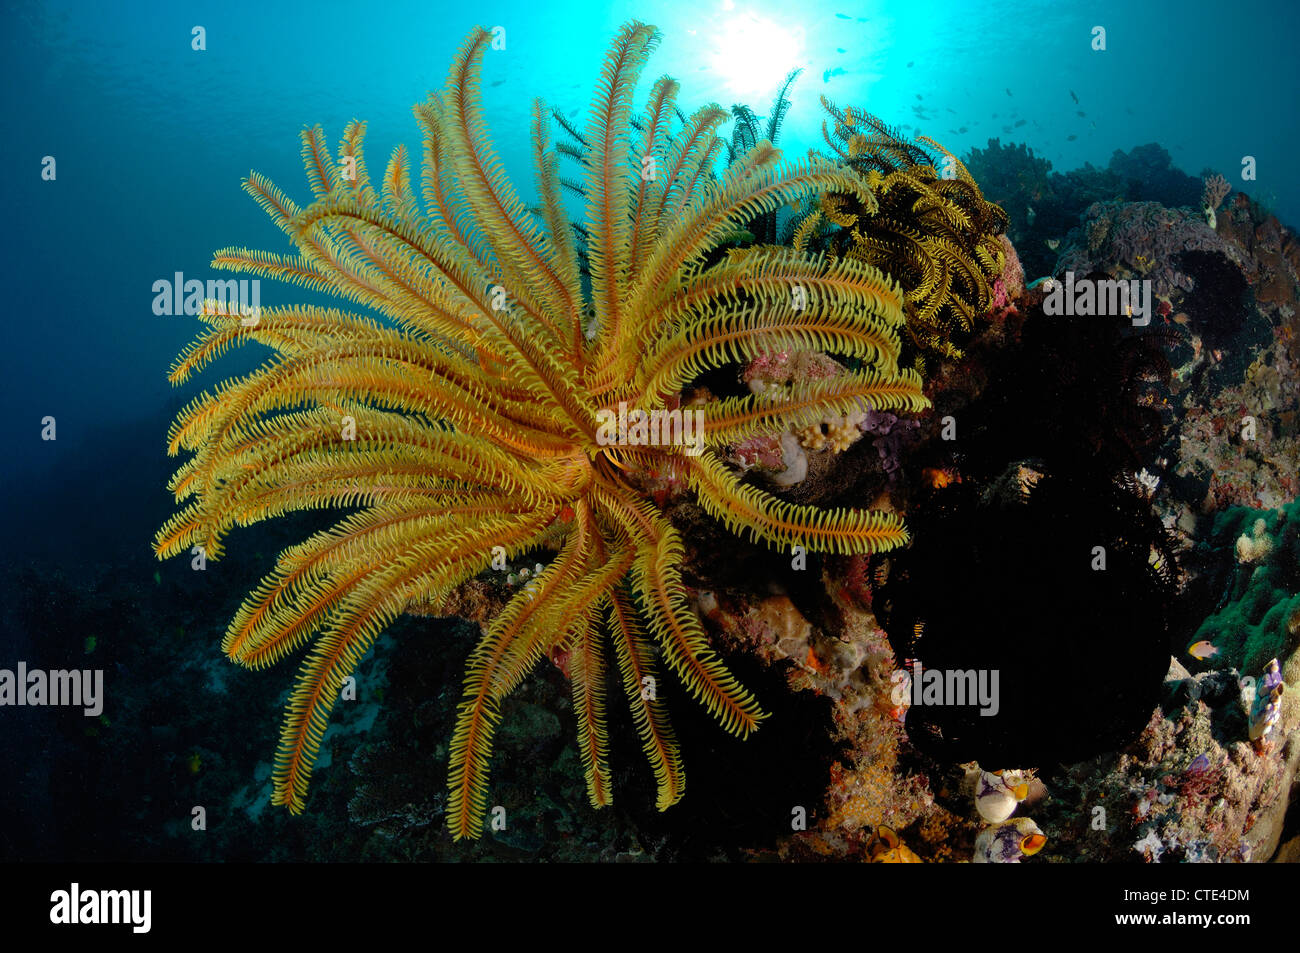 Yellow Crinoid in Coral Reef, Comanthina sp., Komodo, Indonesia - Stock Image